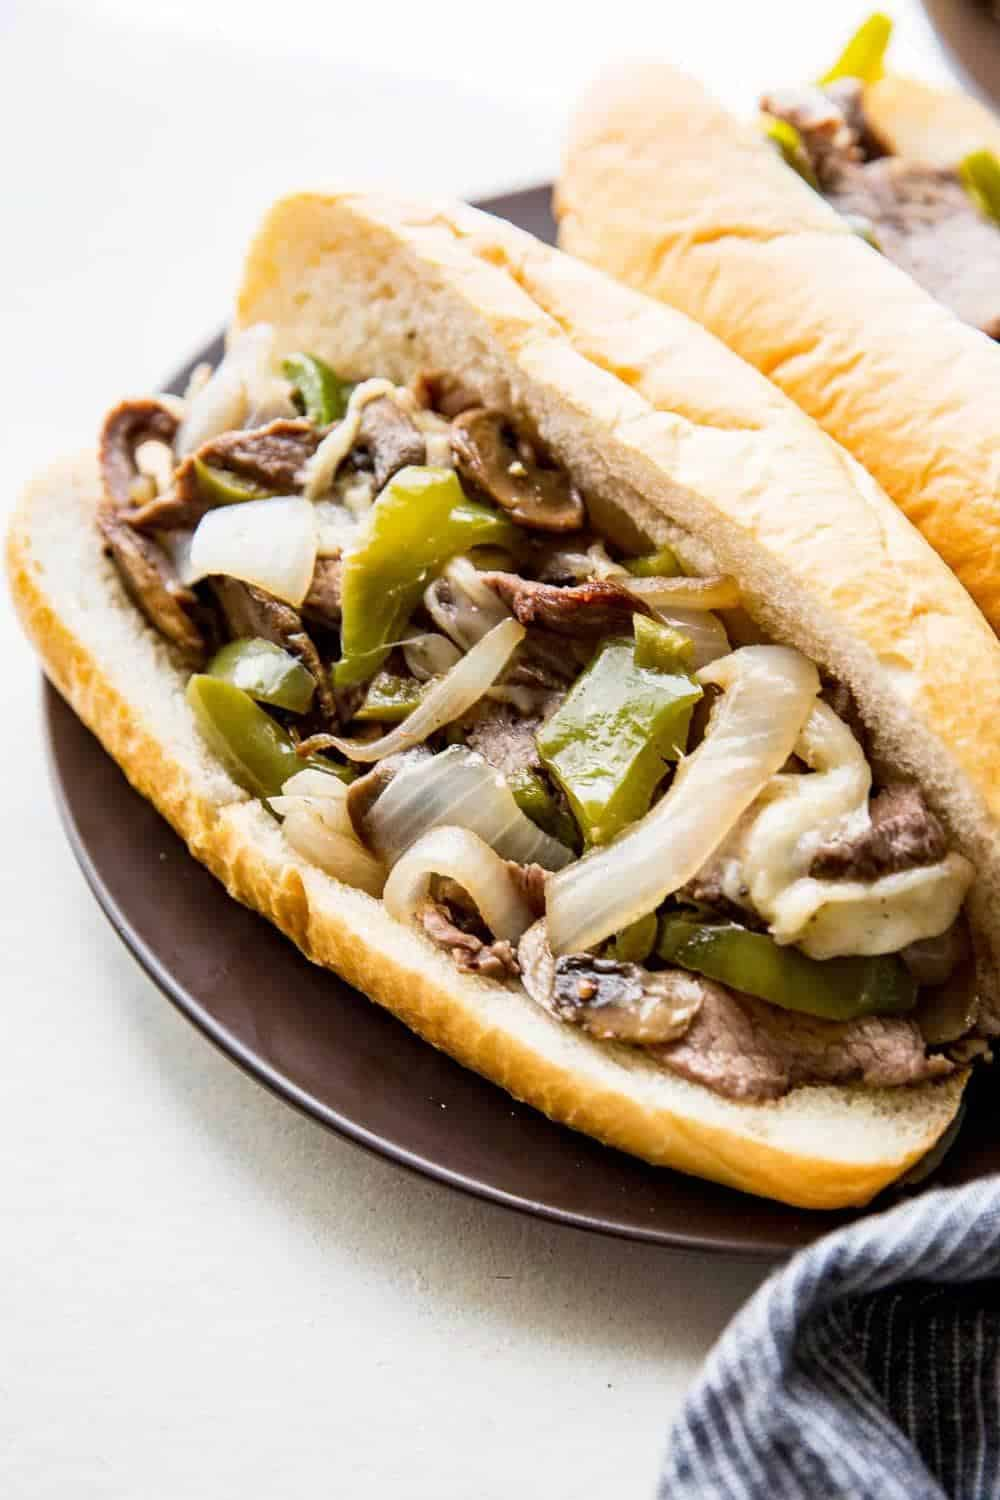 Philly cheesesteak + 25 Delicious Sheet Pan Dinner Recipes that will make dinnertime a dream with easy prep work and less dishes!